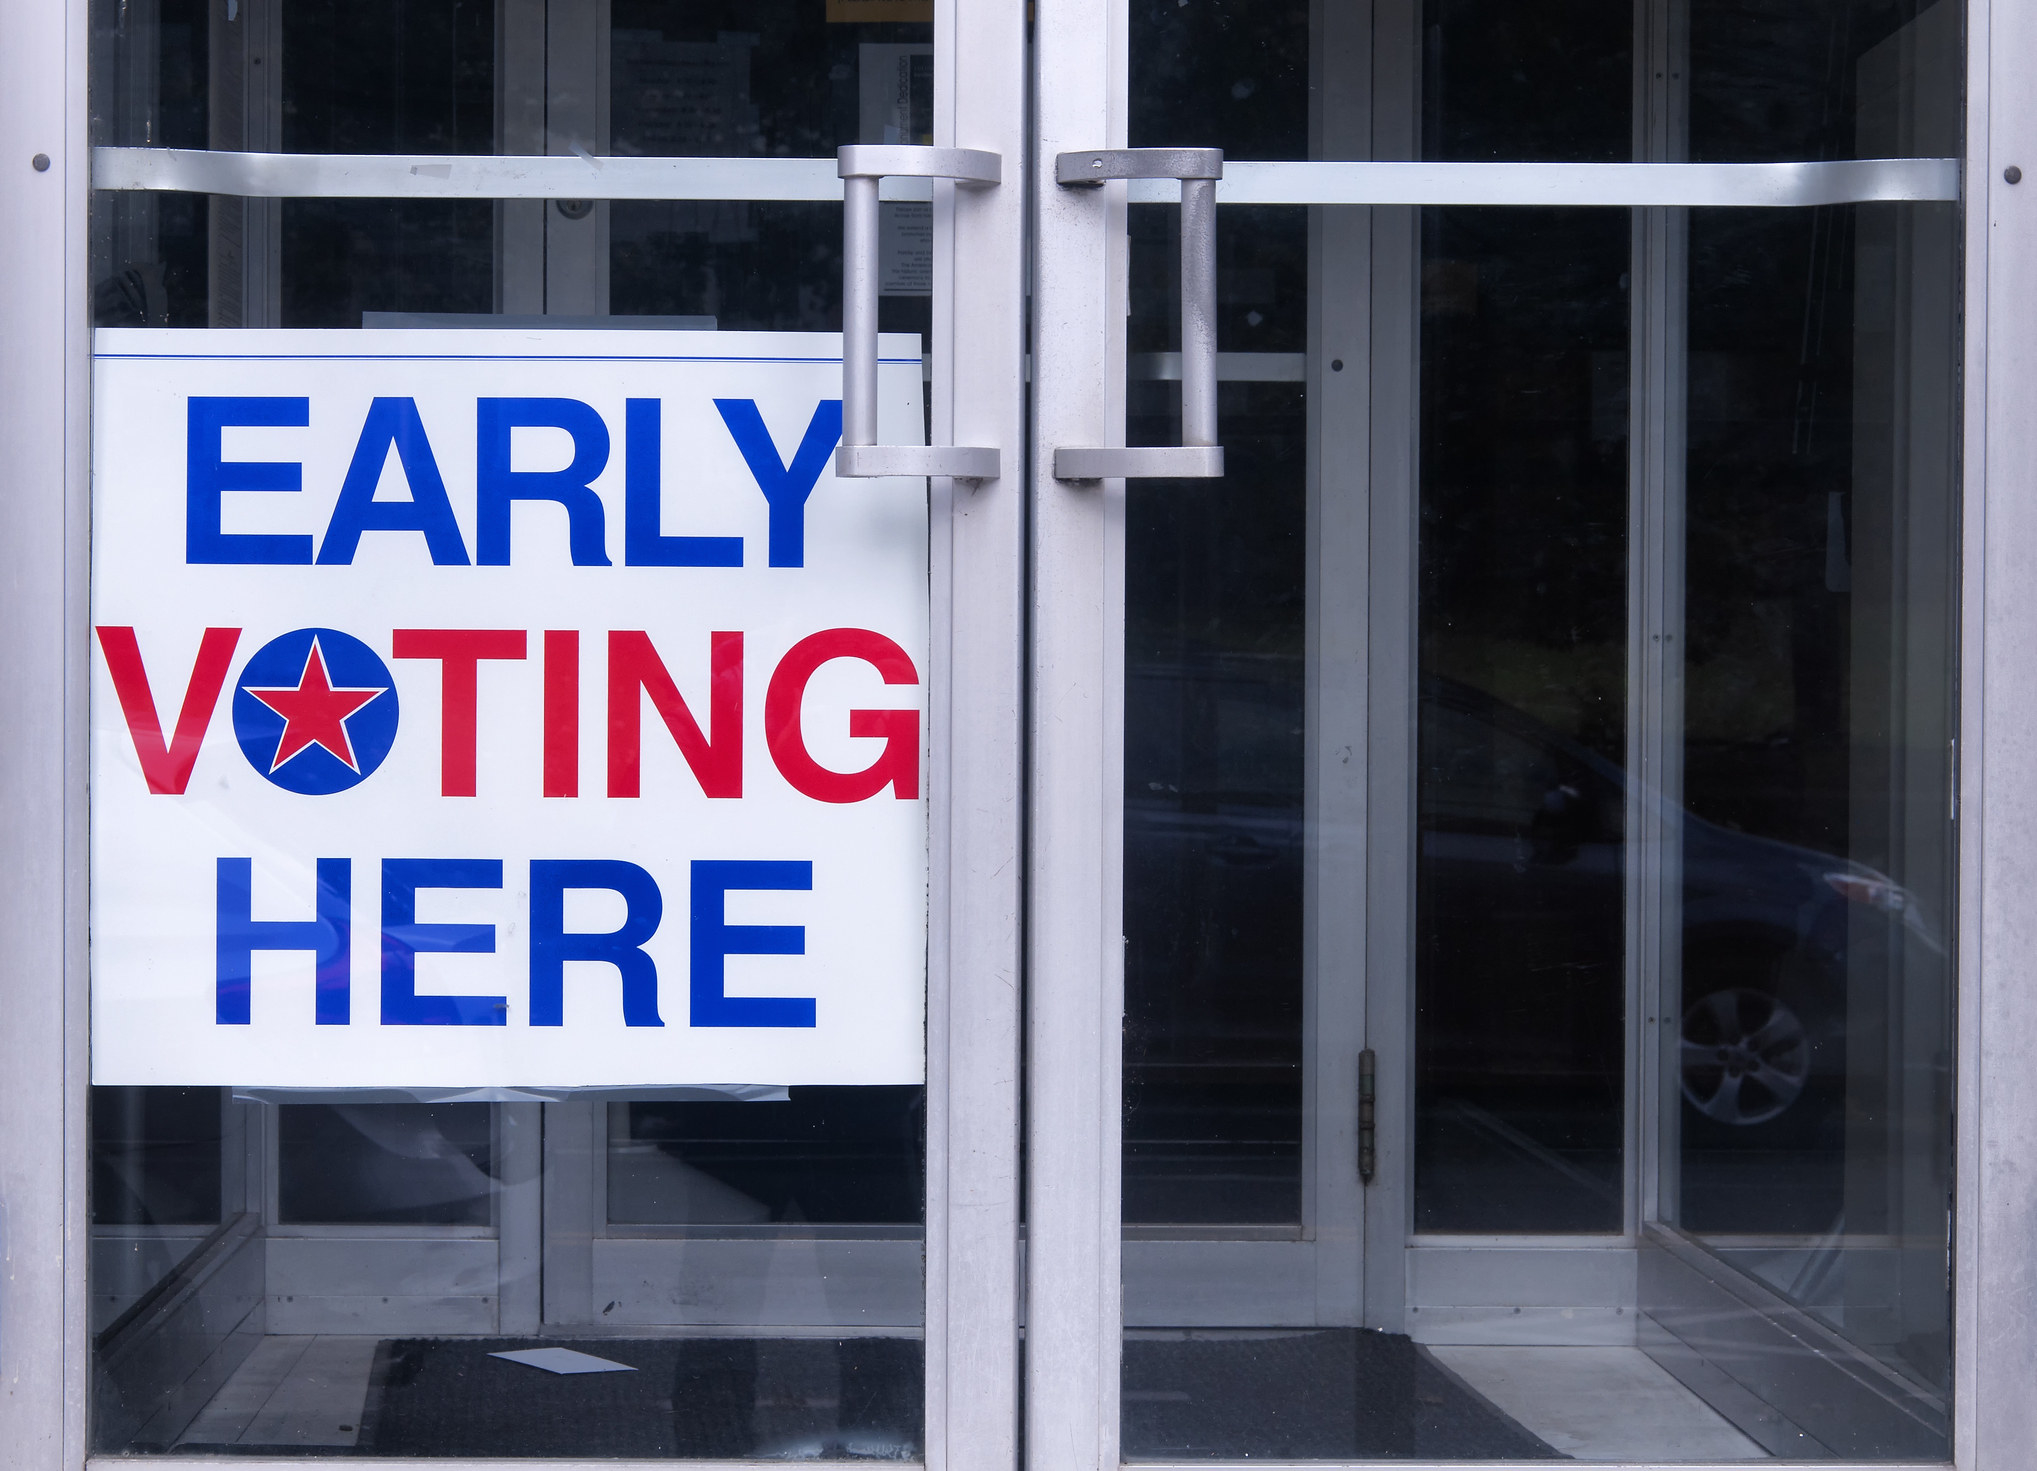 """A sign on the door of a building that reads """"EARLY VOTING HERE"""""""